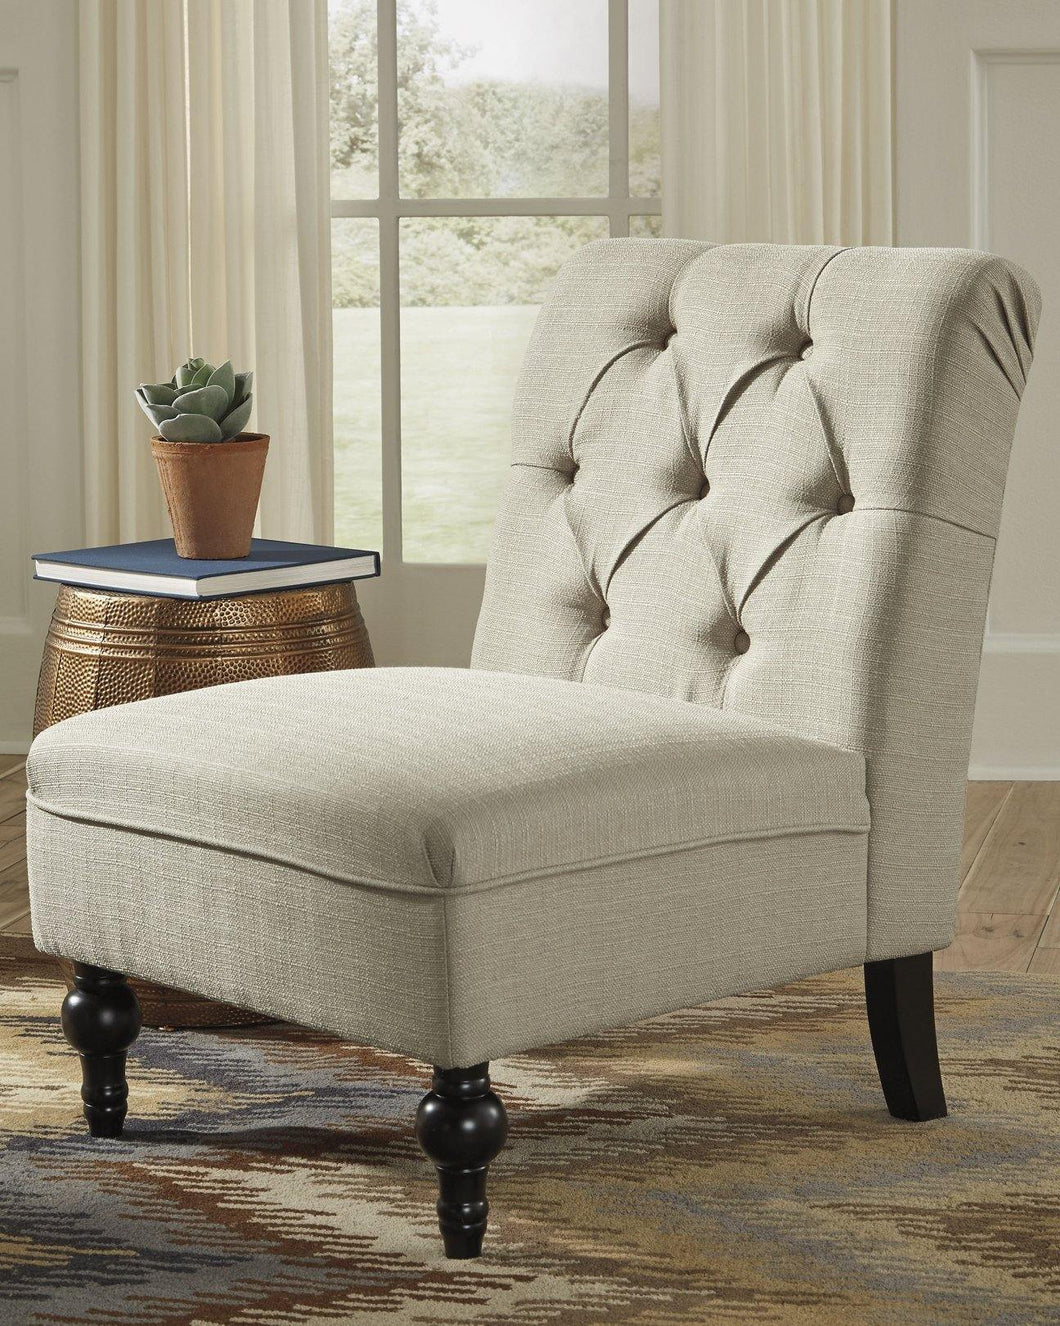 Degas Accent Chair A3000123 By Ashley Furniture from sofafair